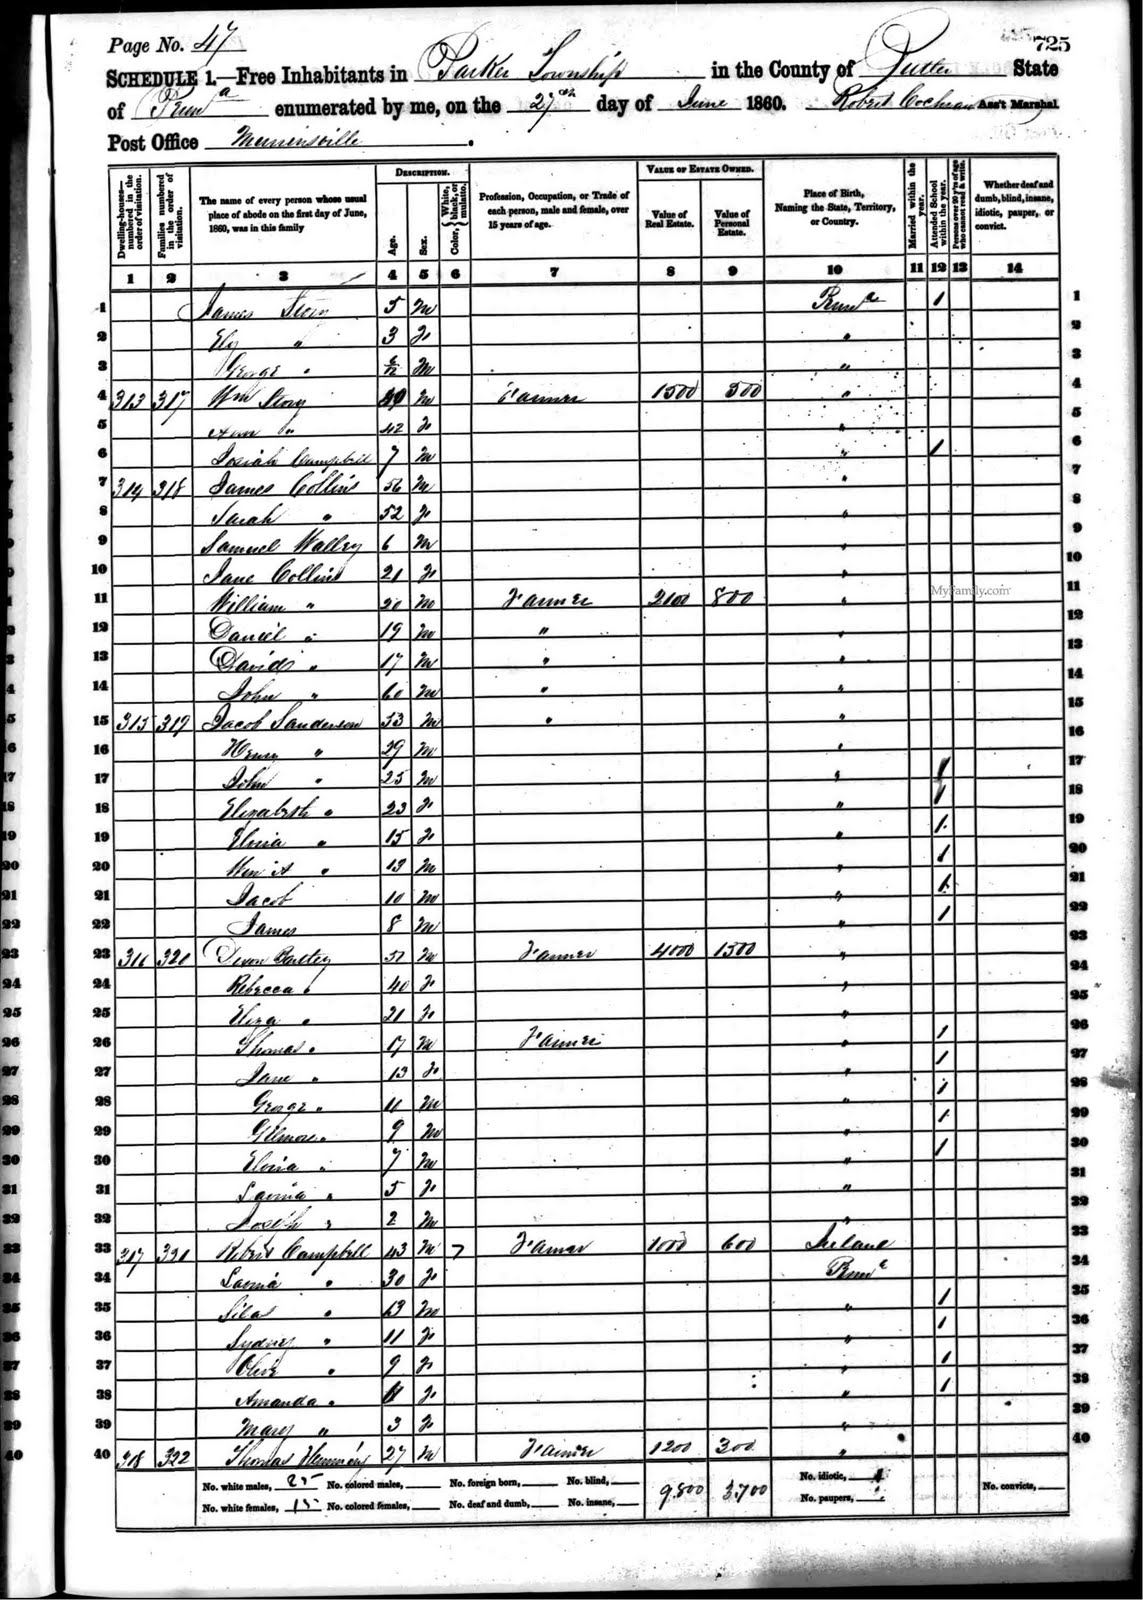 My ancestors and me dixon bartley and family census 1860 u s census pennsylvania butler county parker township millegible post office dwelling 316 family 320 lines 22 31 june 17 1860 xflitez Choice Image